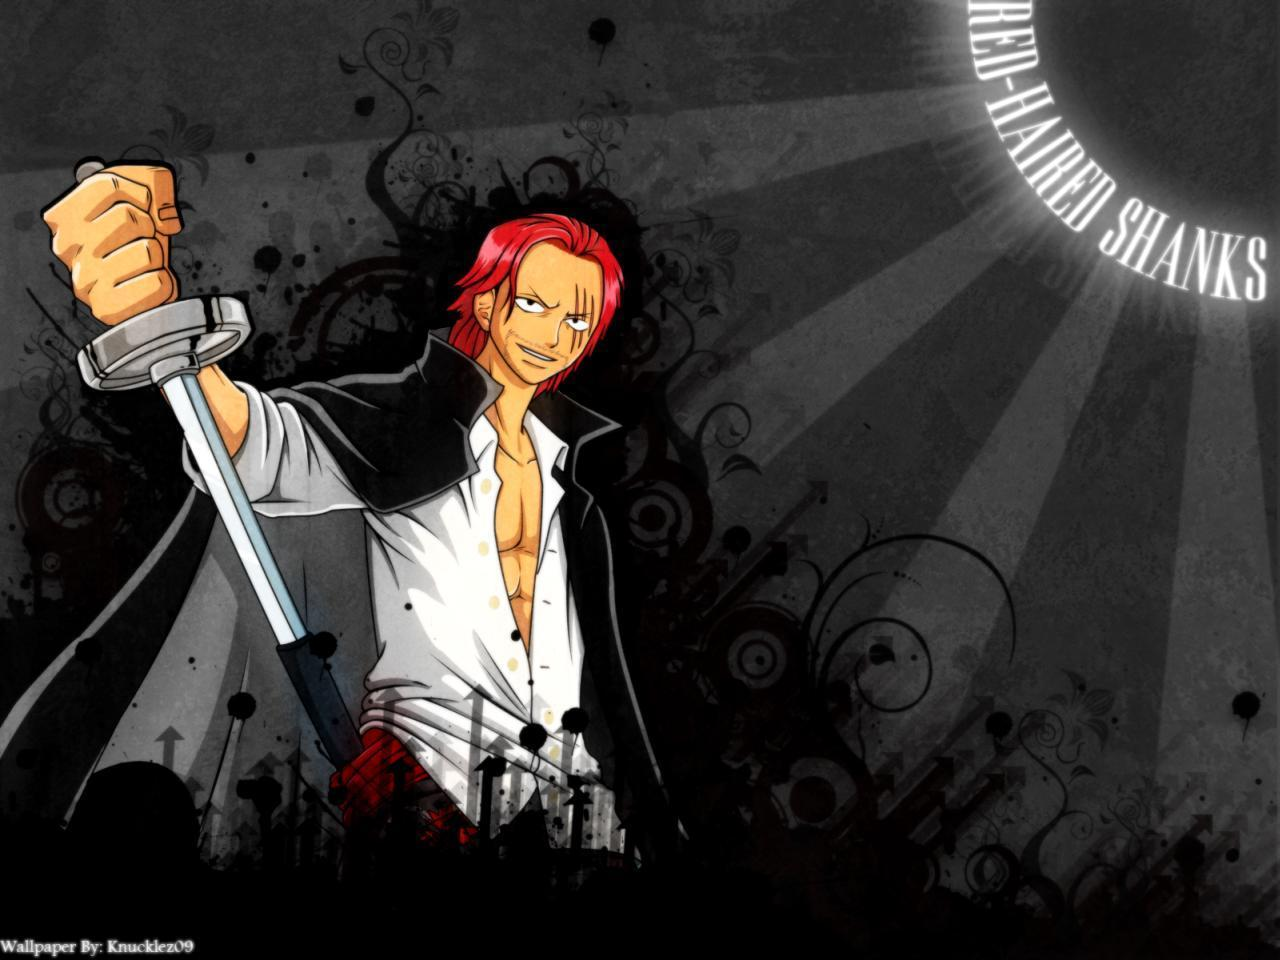 Shanks Wallpapers 1280x960